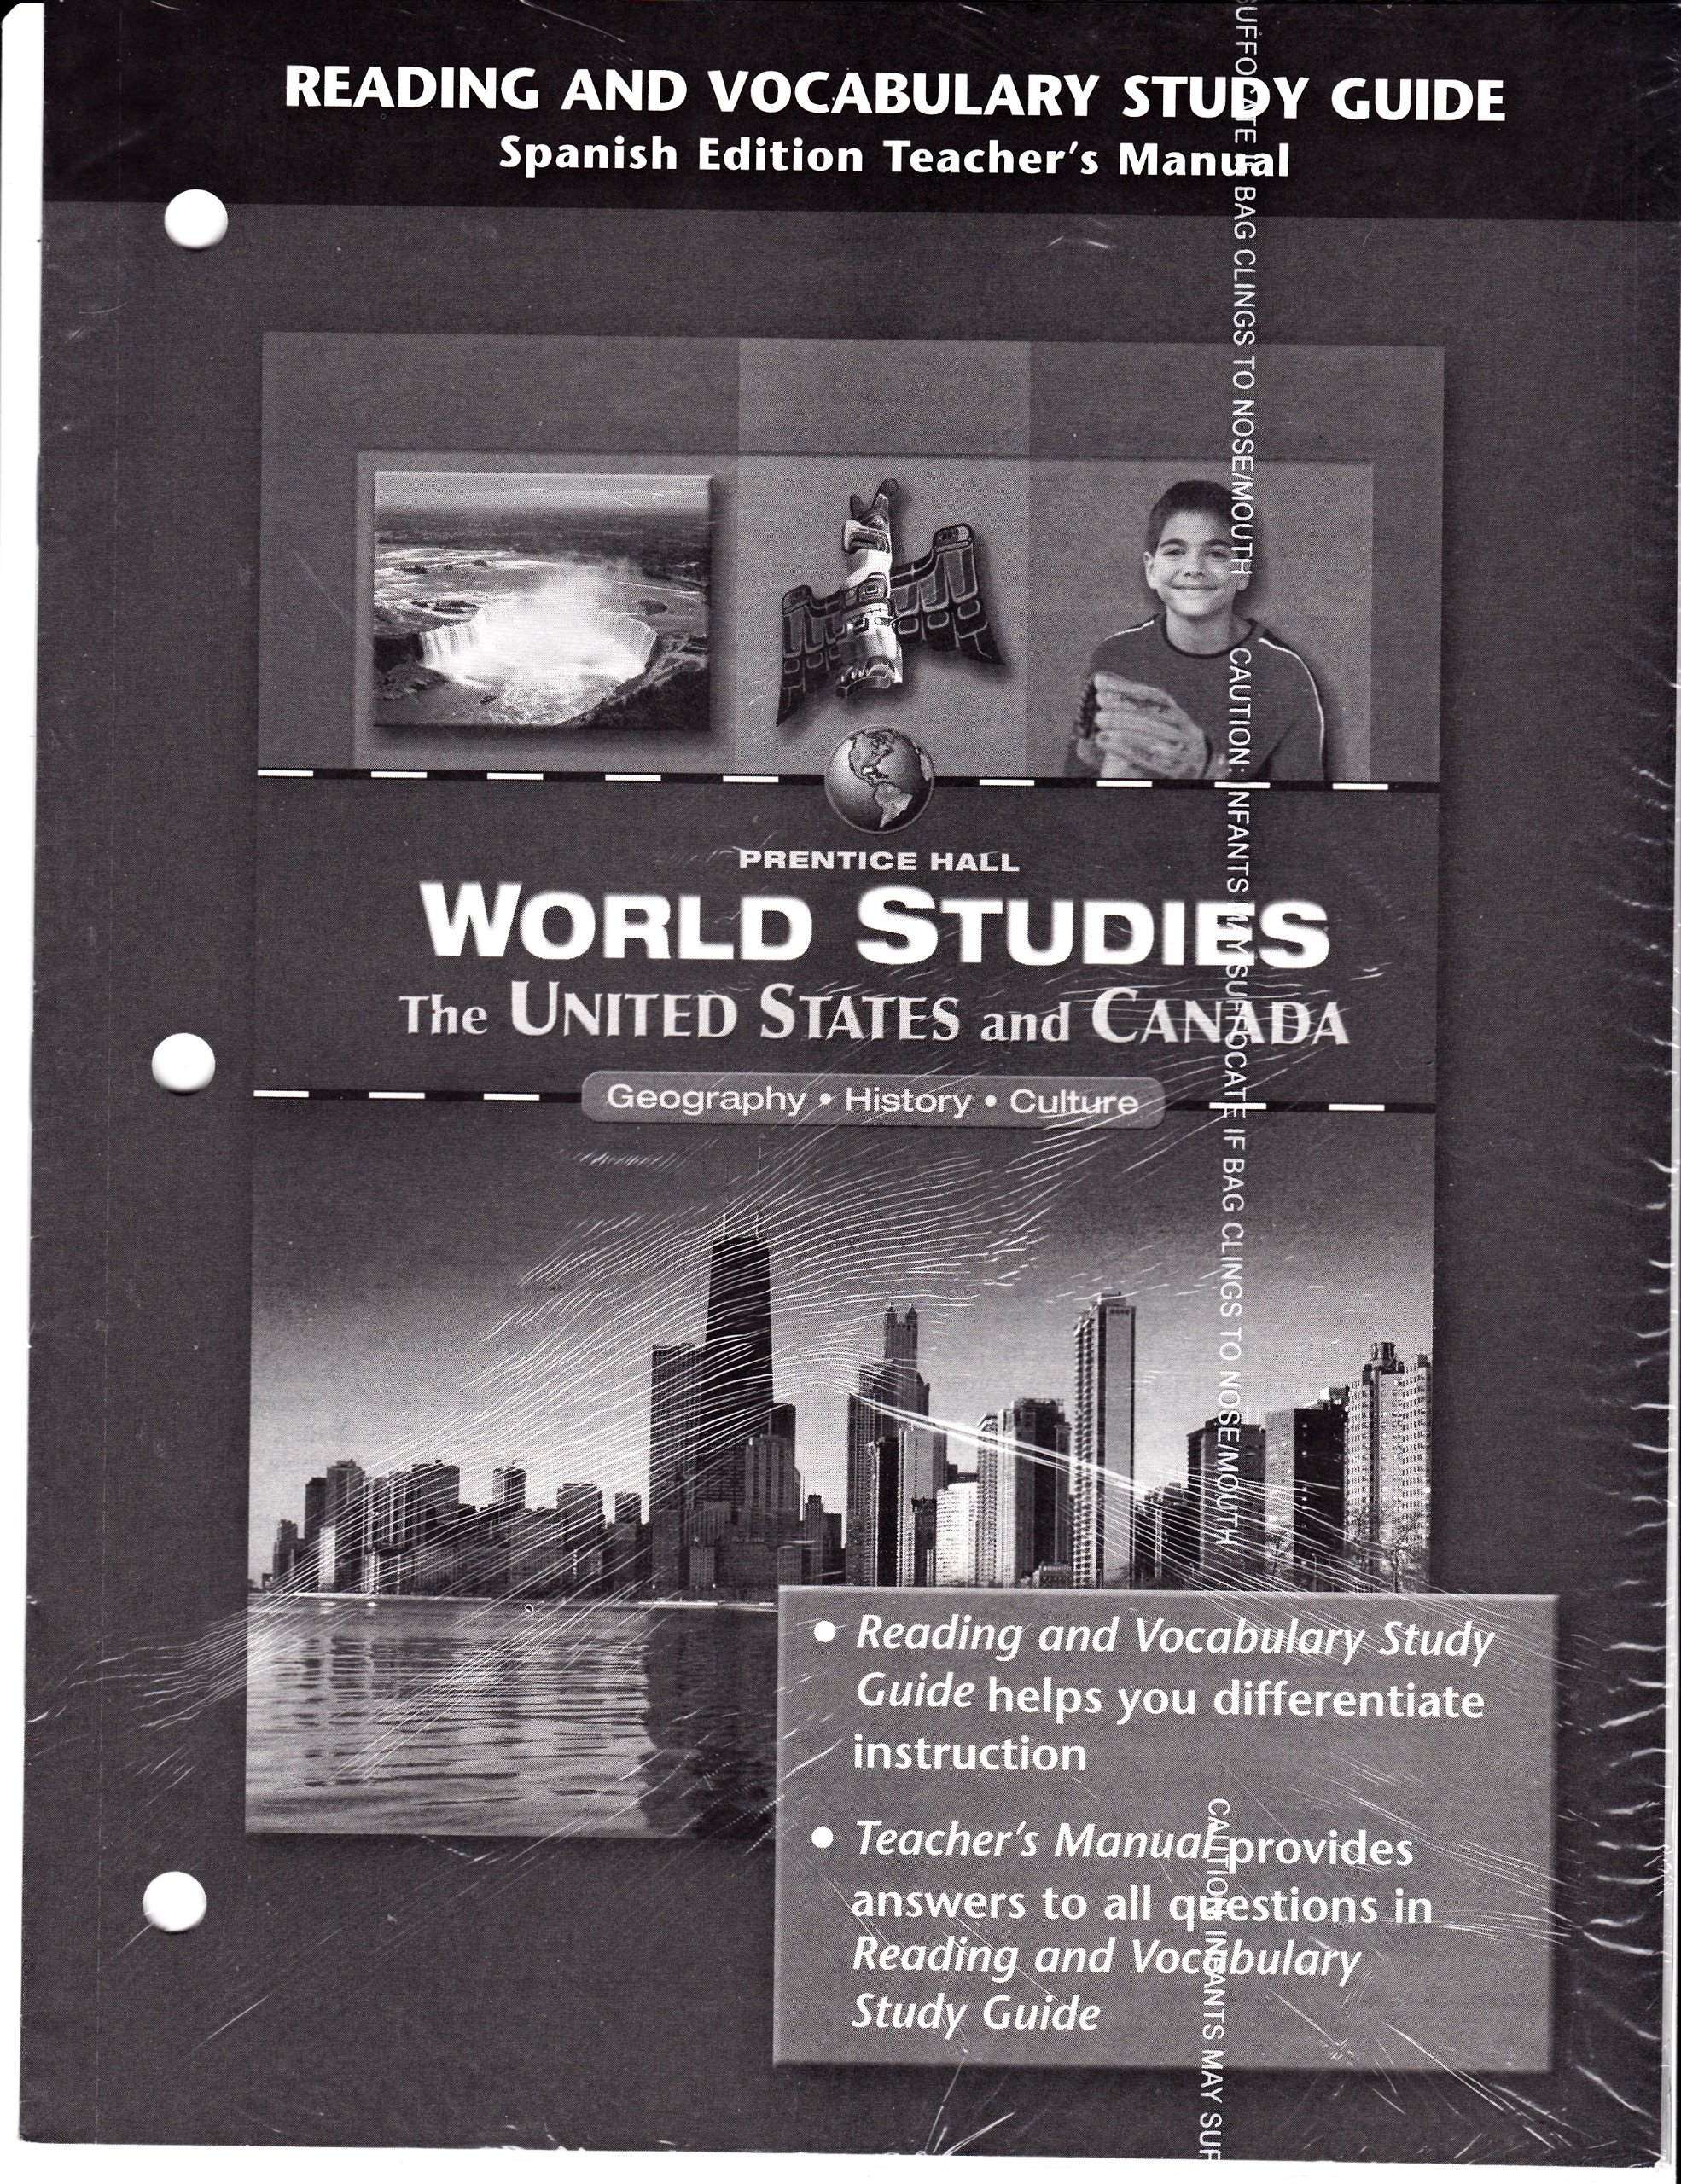 Reading and Vocabulary Study Guide Spanish Edition Teacher's Manual (Prentice  Hall World Studies The United States and Canada, Geography - History ...